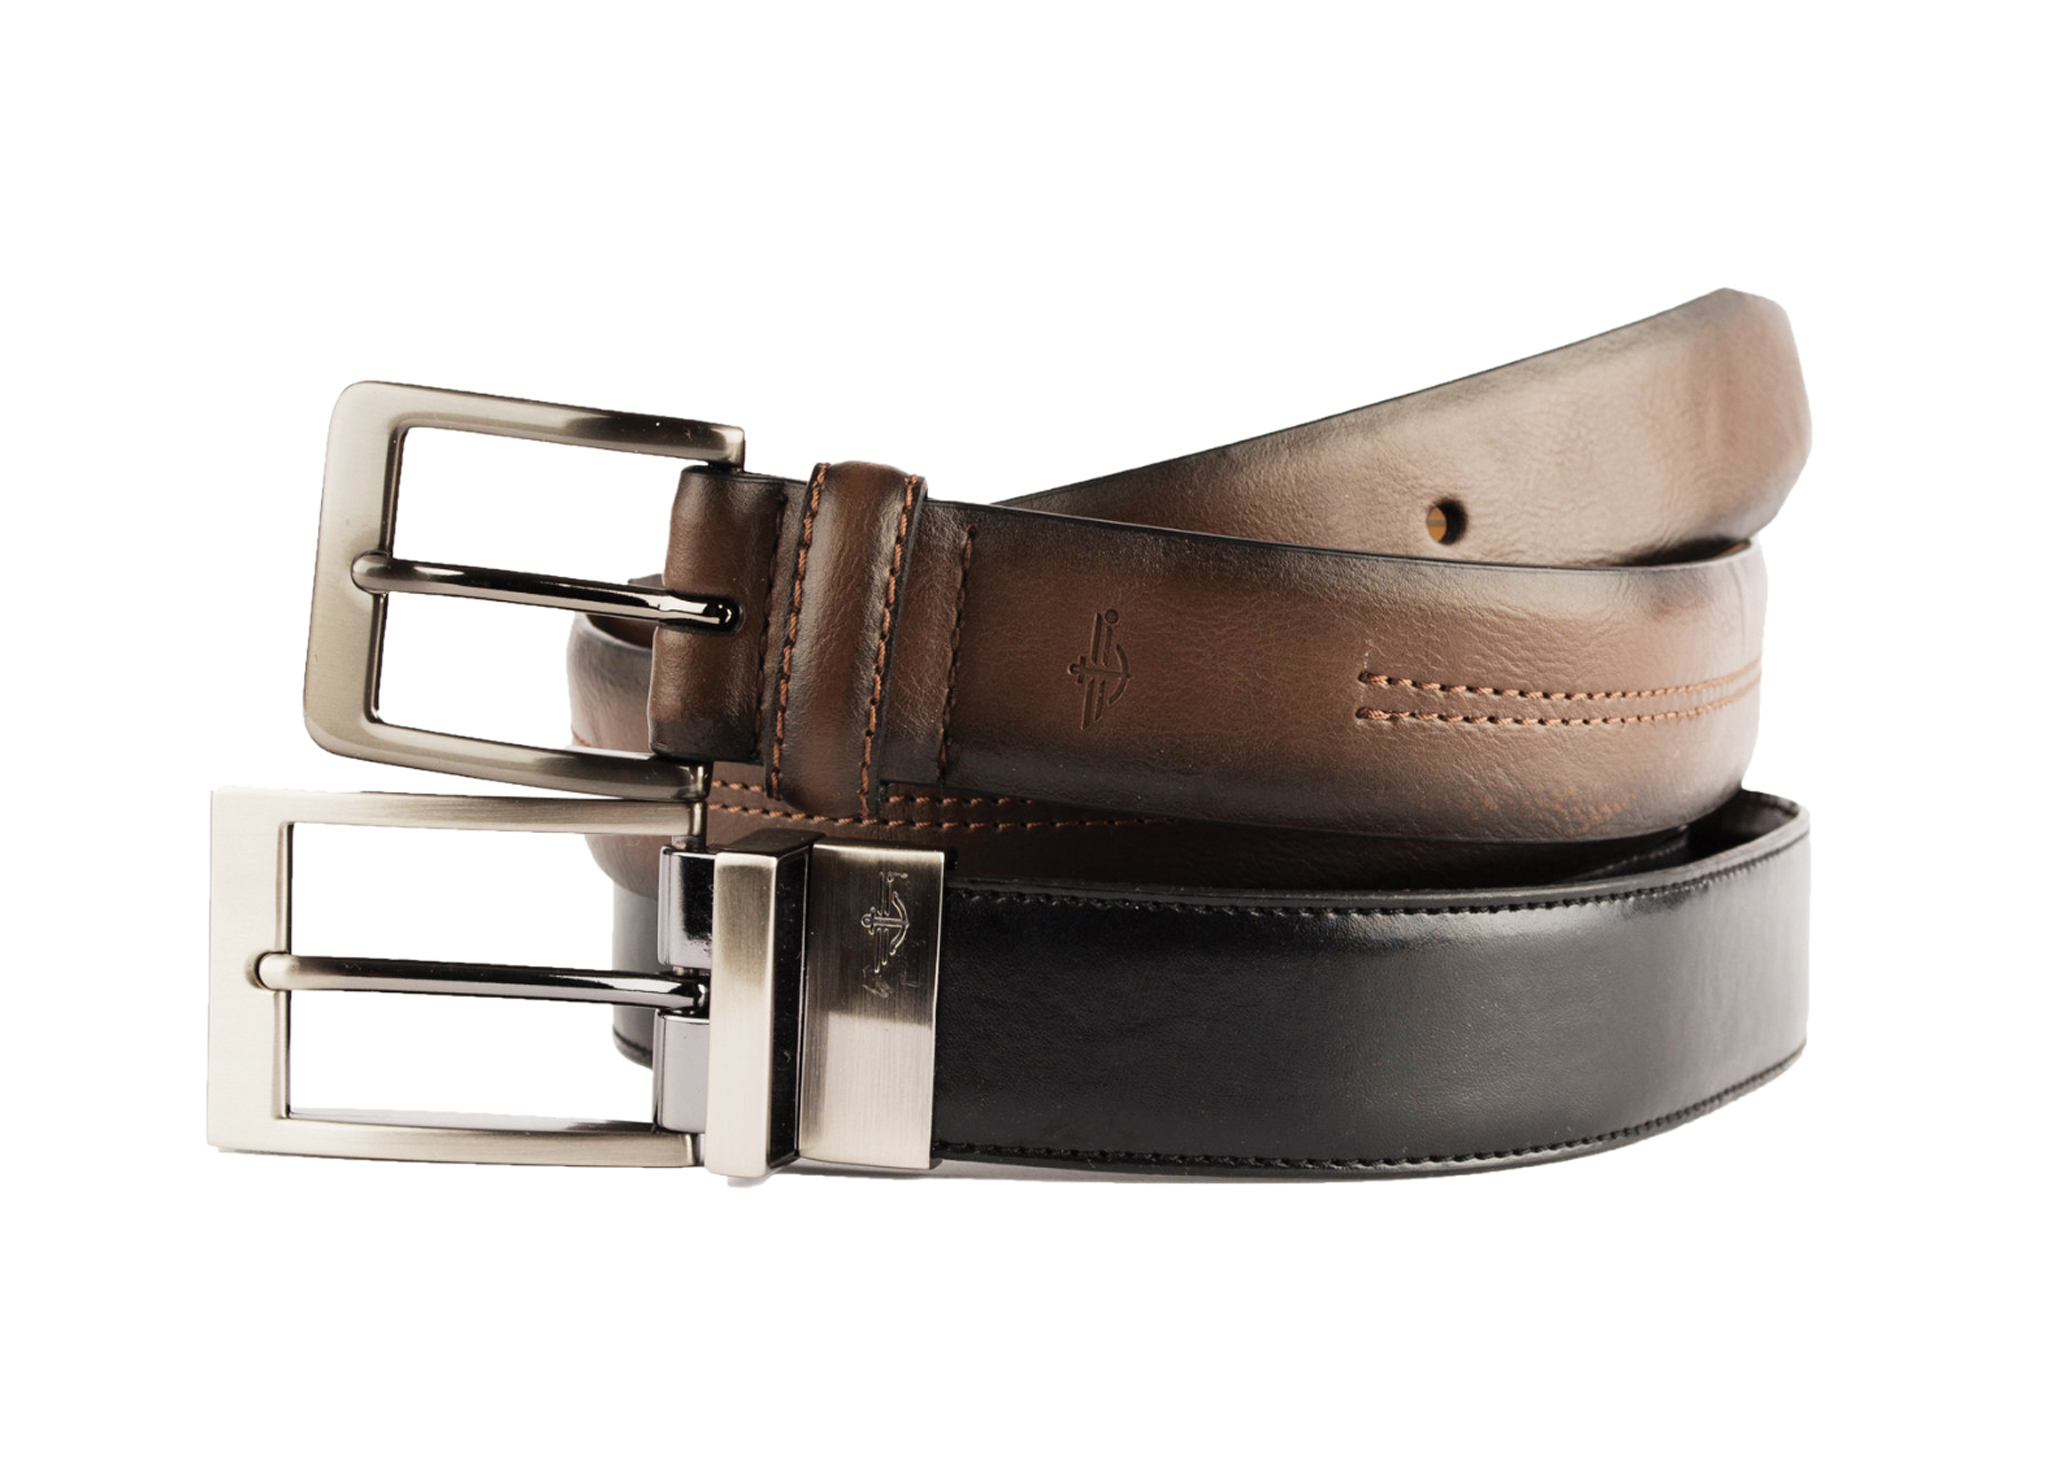 Dockers belts from Randa.